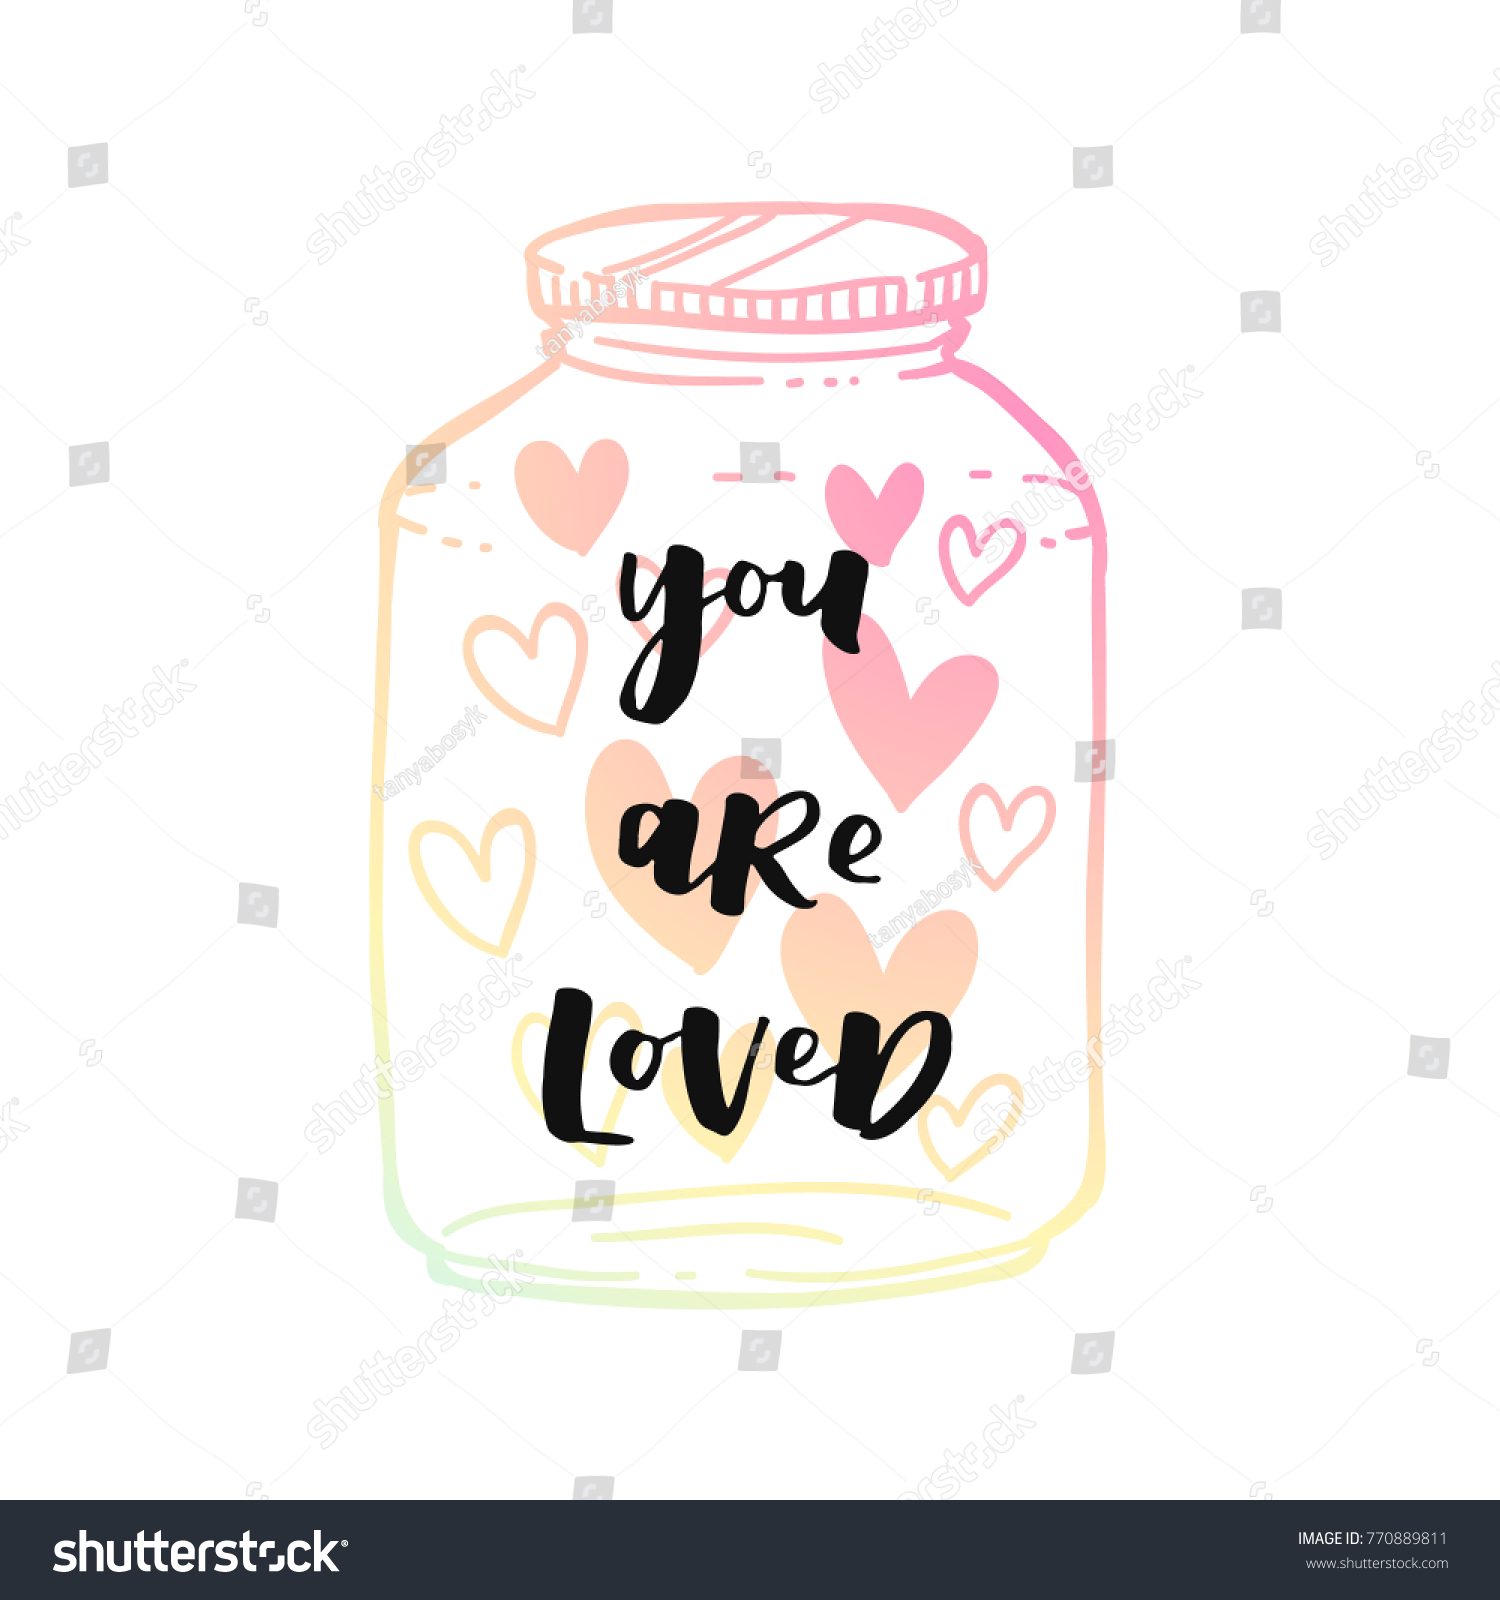 Romantic greeting card valentines day modern stock vector 770889811 romantic greeting card for valentines day modern holographic style poster with lettering you are loved kristyandbryce Gallery